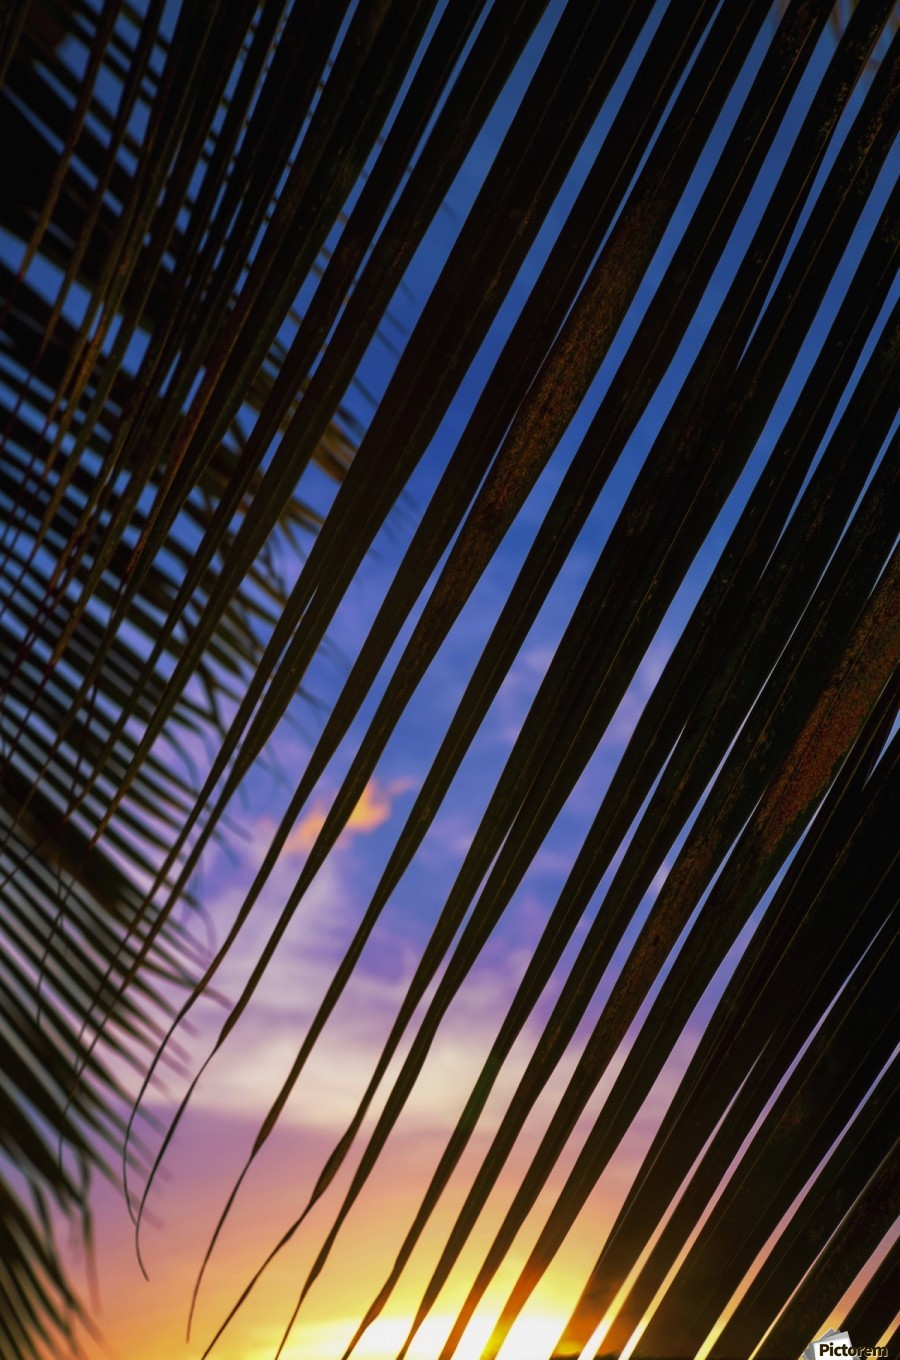 Close-up of silhouetted palm fronds with beautiful sunset color sky in the background; Honolulu, Oahu, Hawaii, United States of America  Print